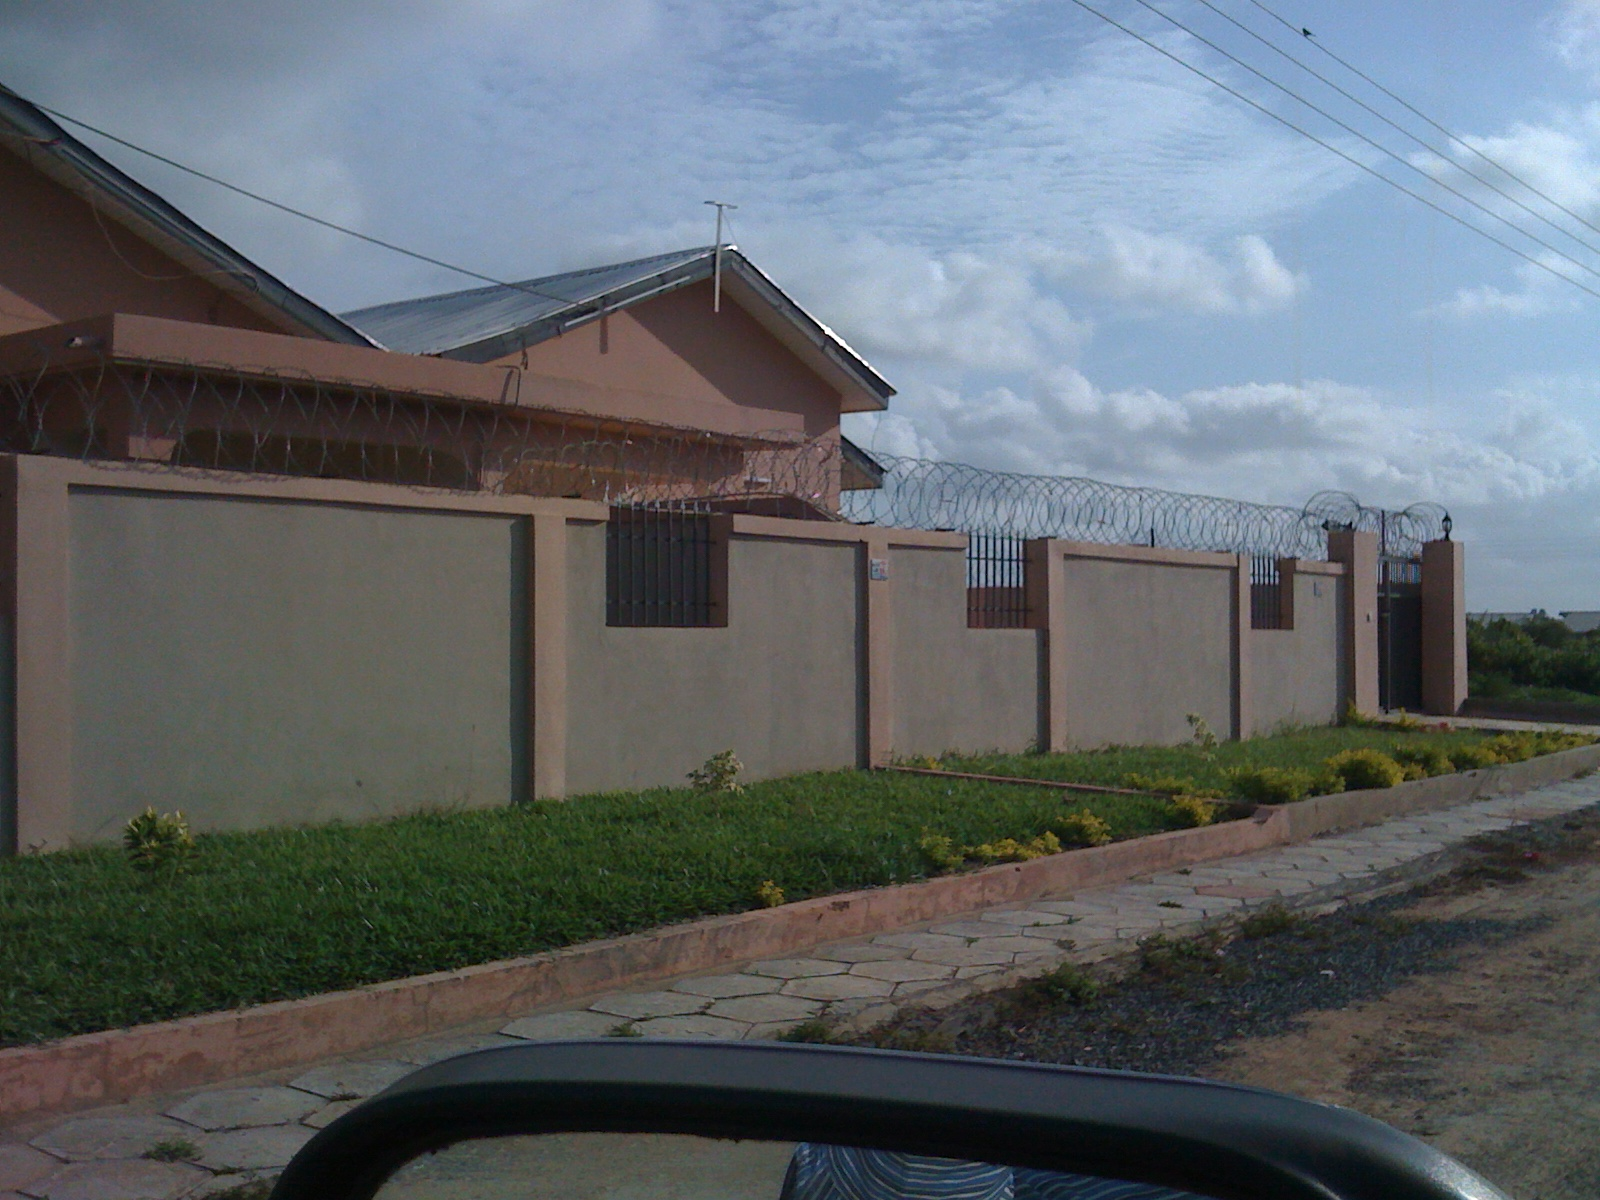 1 Palm Blvd Trasacco Valley East Legon likewise Real Estate East Legon Plans furthermore Real Estate In Ghana Airport Hills together with Ghana Real Estate Affordable Houses Homes additionally Neat 4 Bedroom House For Rent ID15HmEa. on 4 bedroom house trasacco east legon